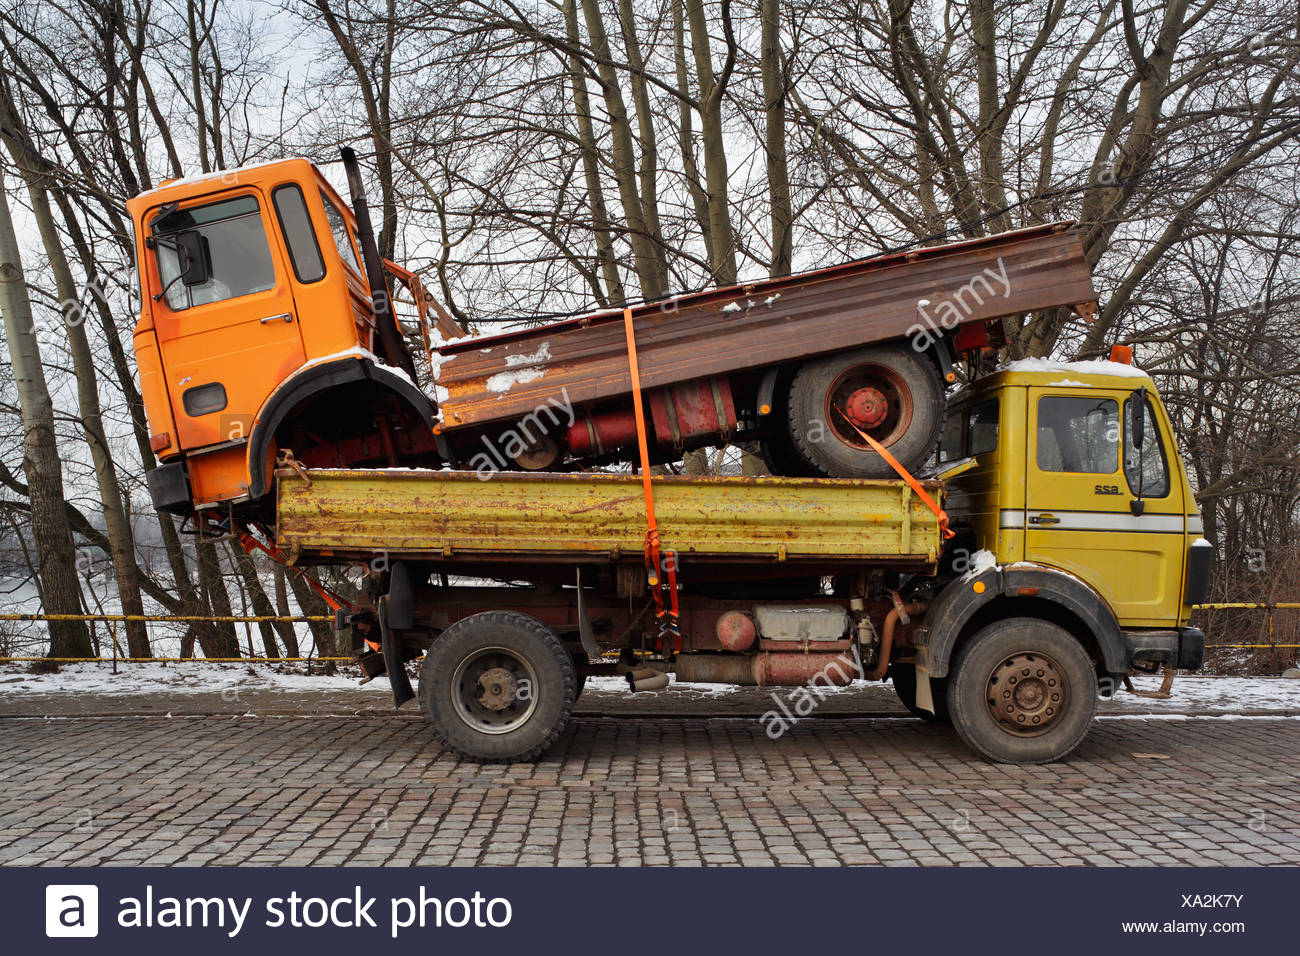 Hamburg, Germany, an old truck on the loading area of a specific truck in the port of Hamburg - Stock Image